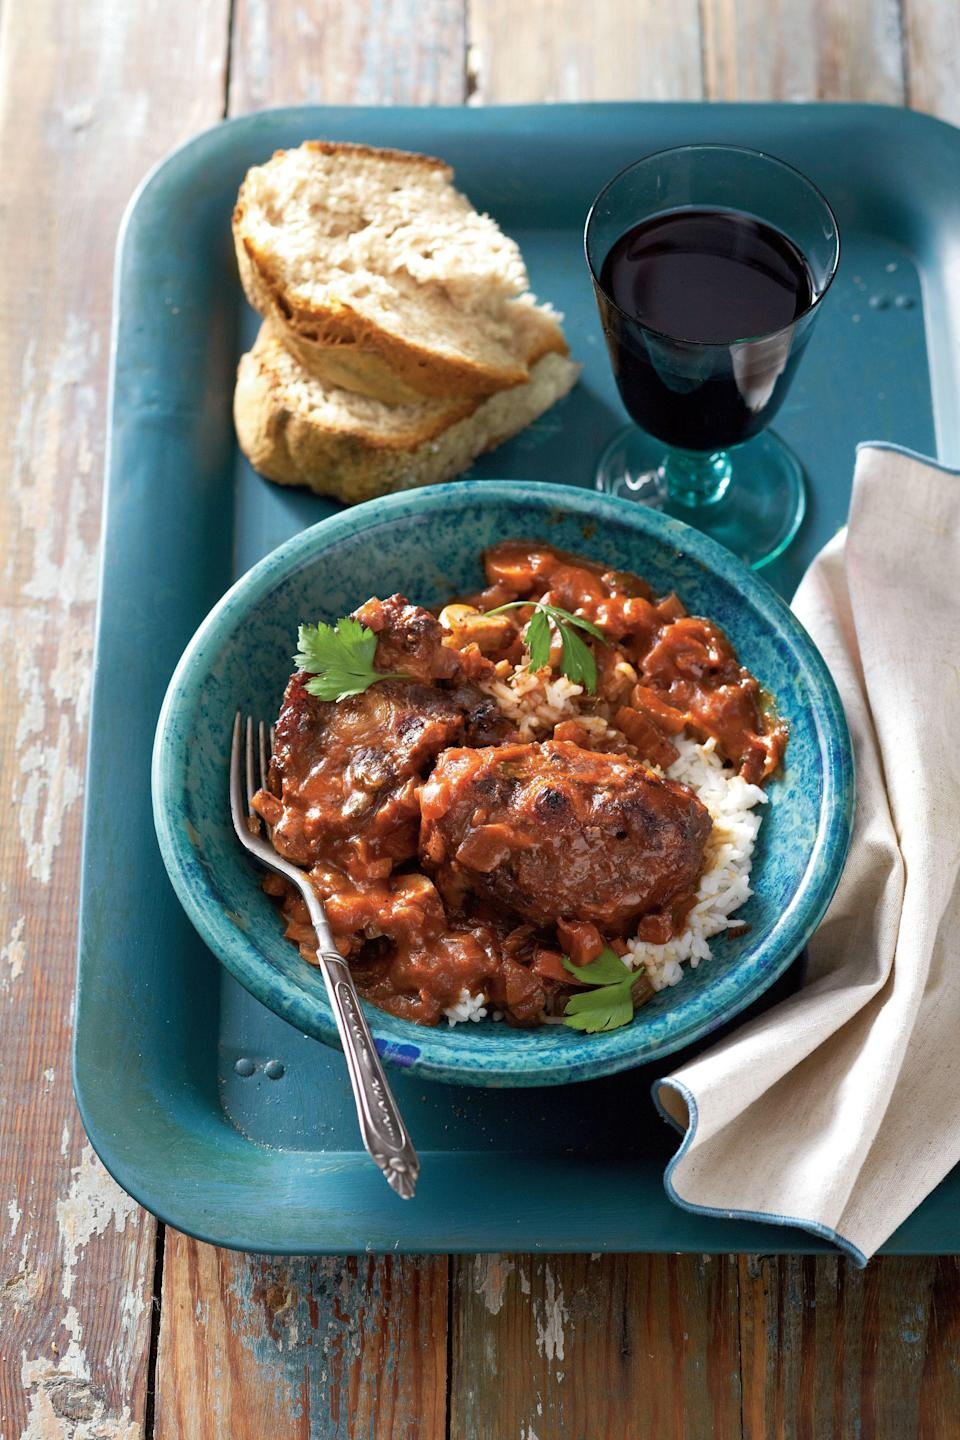 """<p><strong>Recipe:</strong> <a href=""""http://www.myrecipes.com/recipe/wine-braised-oxtails-50400000126178/"""" rel=""""nofollow noopener"""" target=""""_blank"""" data-ylk=""""slk:Wine-Braised Oxtails"""" class=""""link rapid-noclick-resp""""><strong>Wine-Braised Oxtails</strong></a></p> <p>Slow cooking oxtails (beefy cuts from the tail of a cow) with red wine and aromatic vegetables releases their rich flavor, creating a hearty, fork-tender stew that's guaranteed to take the chill off a cold winter's evening.</p>"""